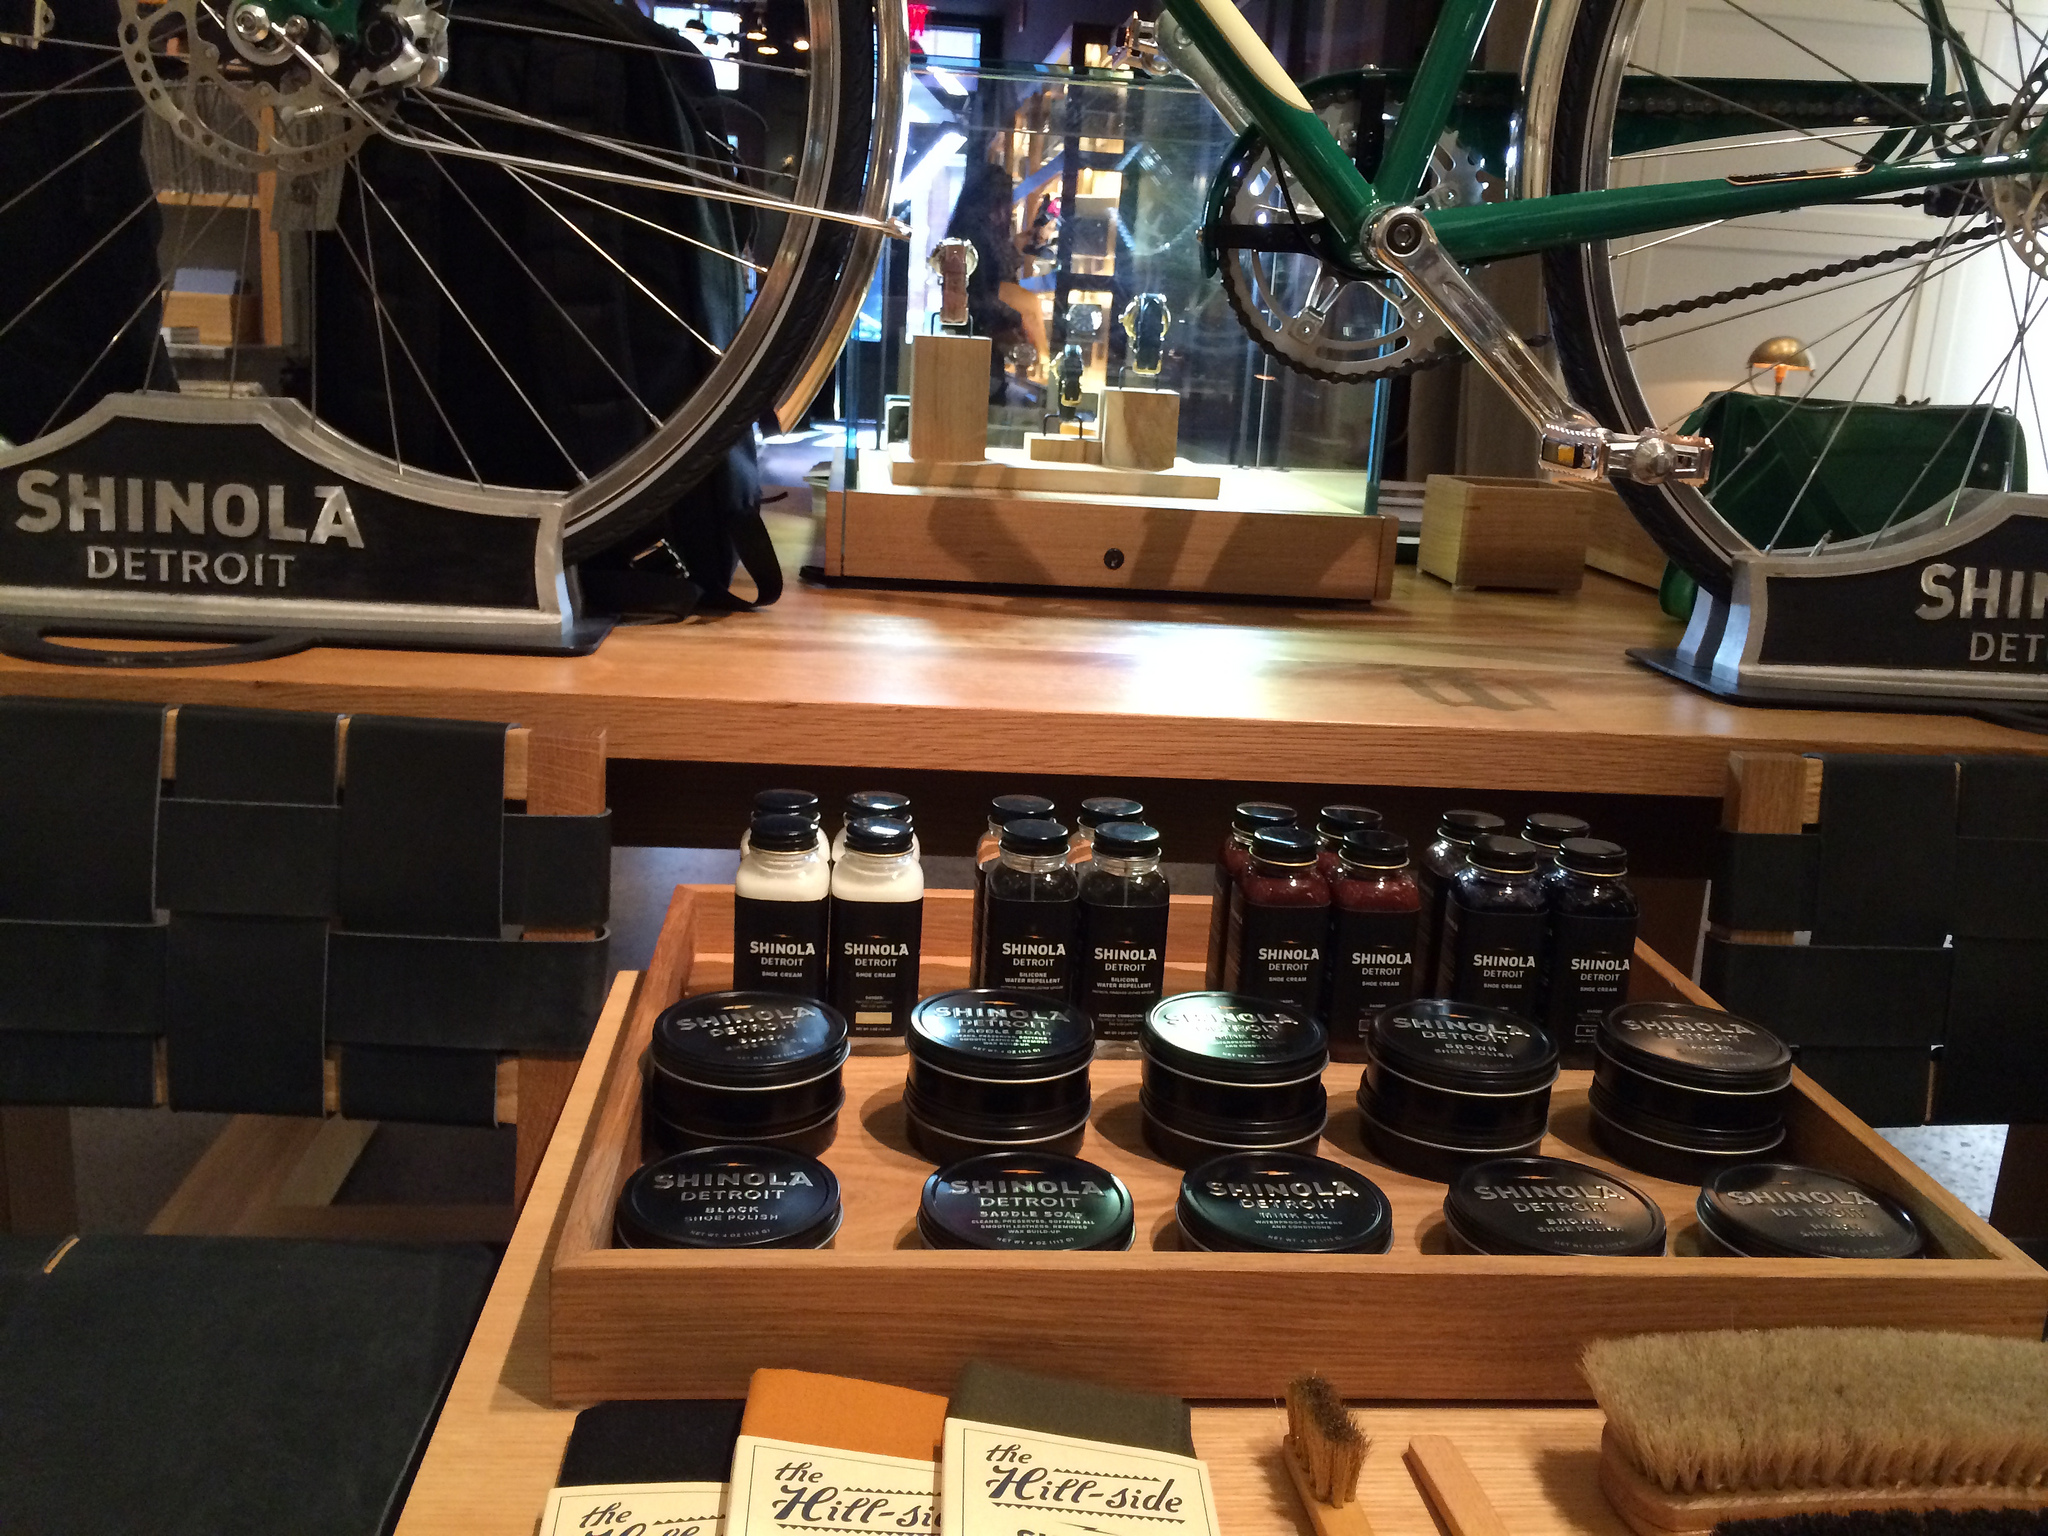 Saddle soap and Shinola bike at Shinola in New York. Photo by alphacityguides.